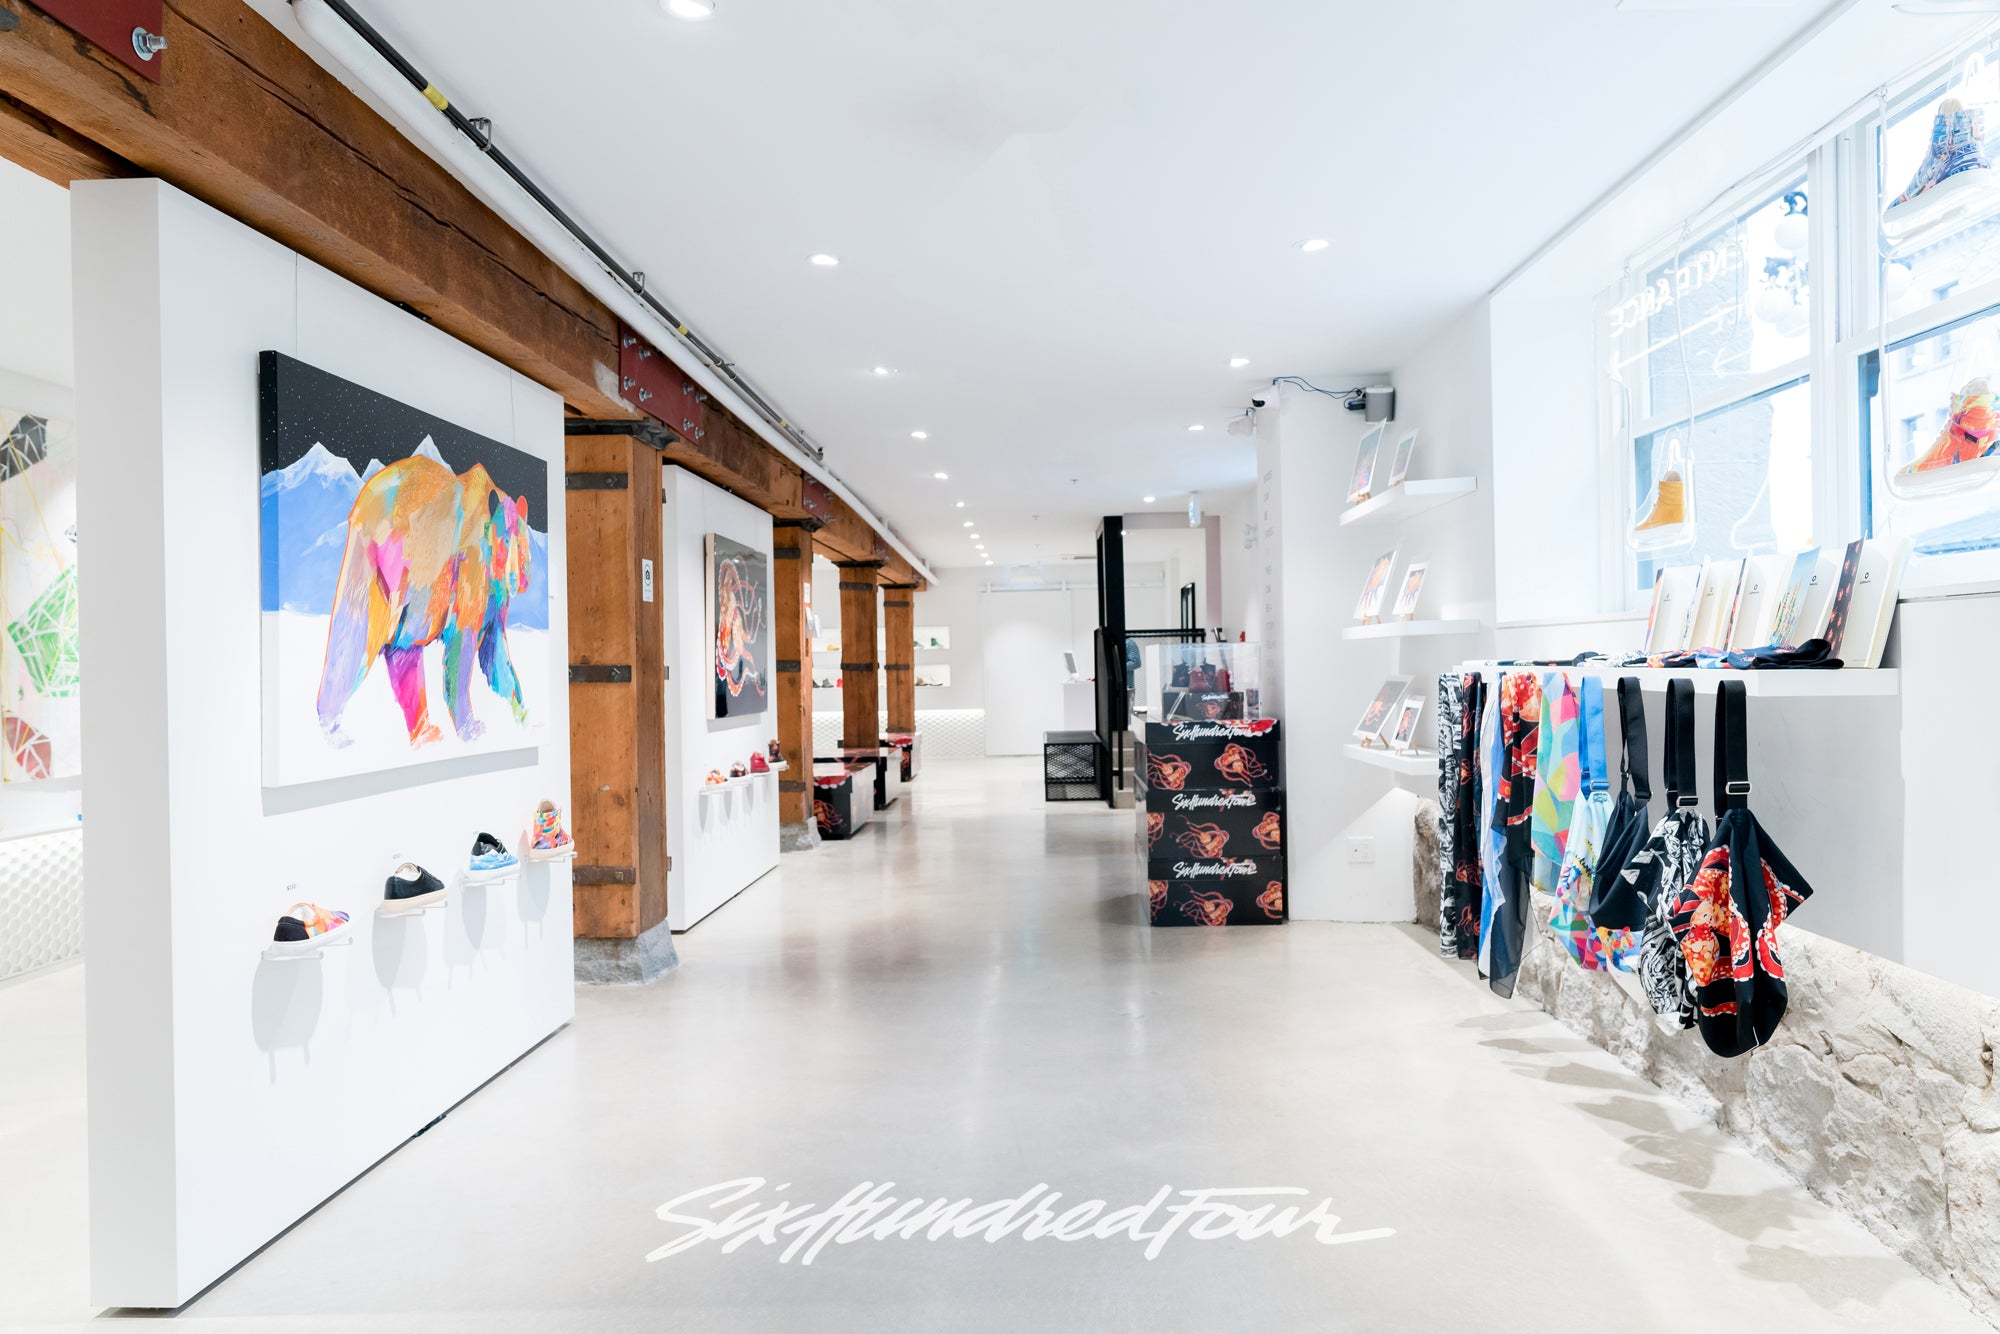 View of Six Hundred Four Sneaker Gallery